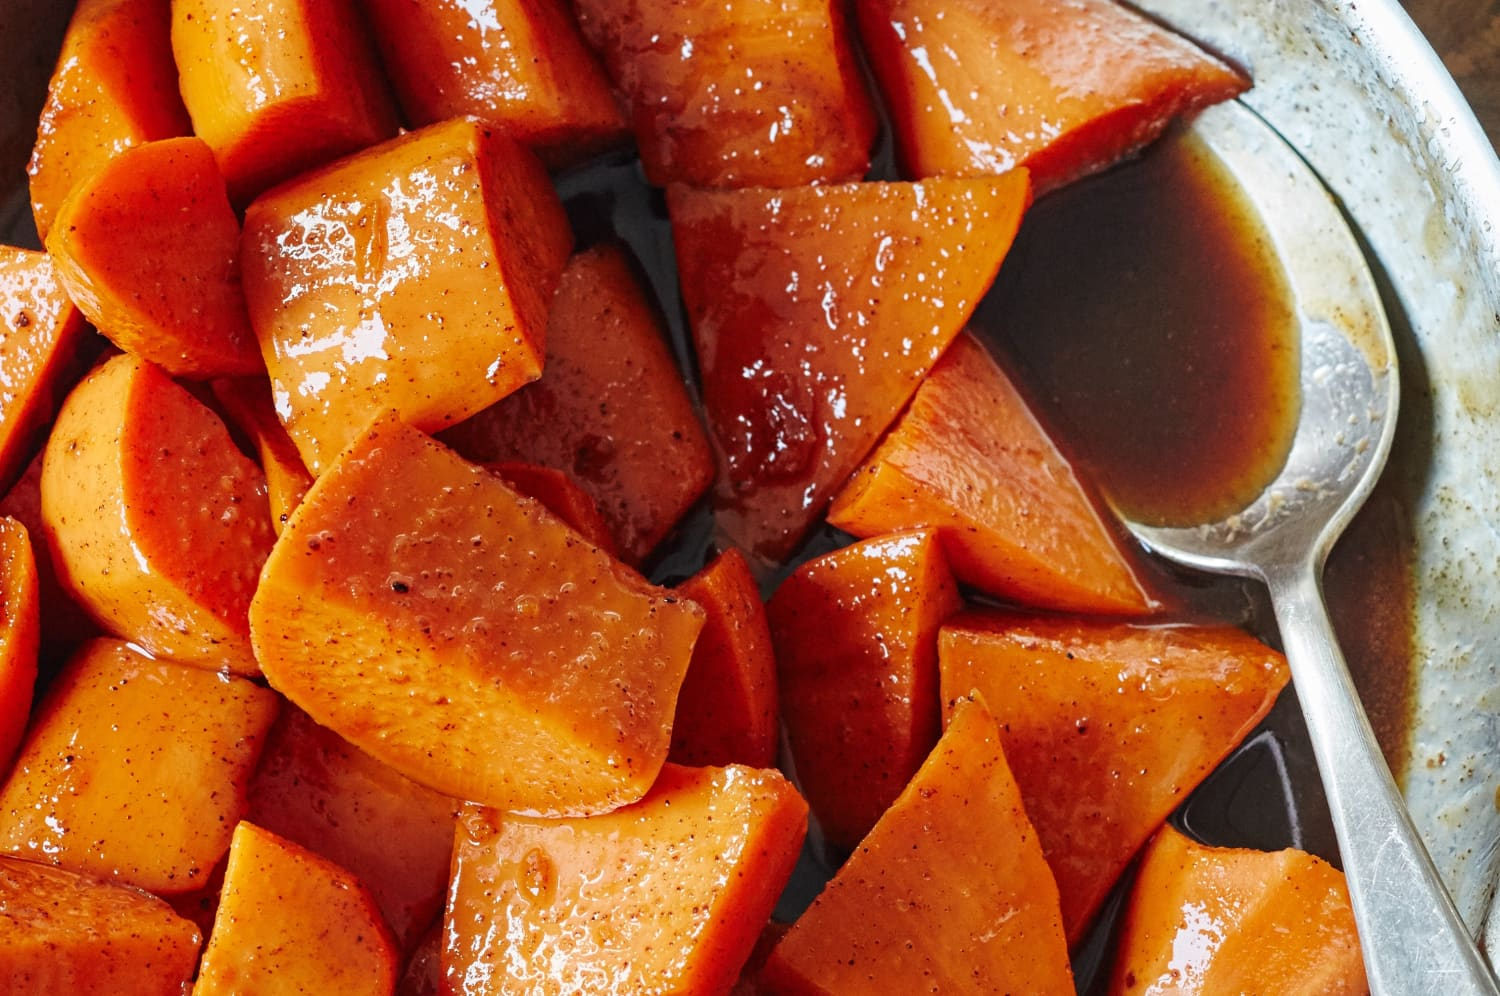 Recipe: Candied Sweet Potatoes